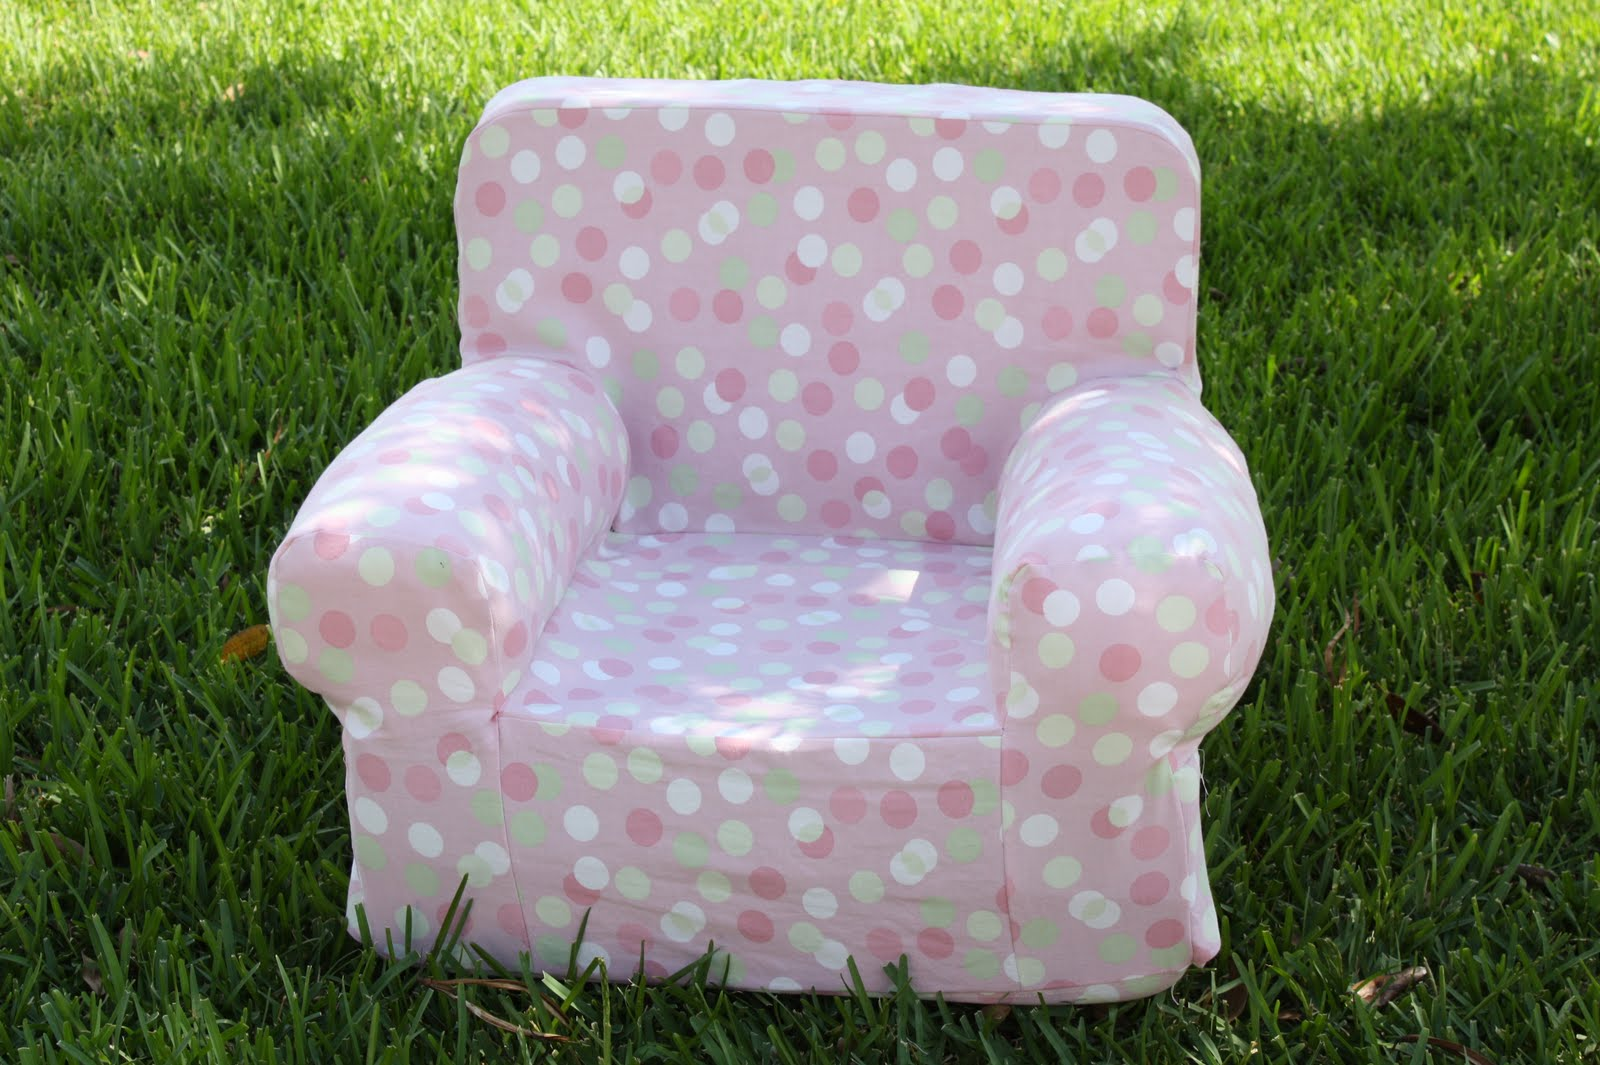 Tremendous A Crafty Escape Knockoff Pottery Barn Anywhere Chair Uwap Interior Chair Design Uwaporg